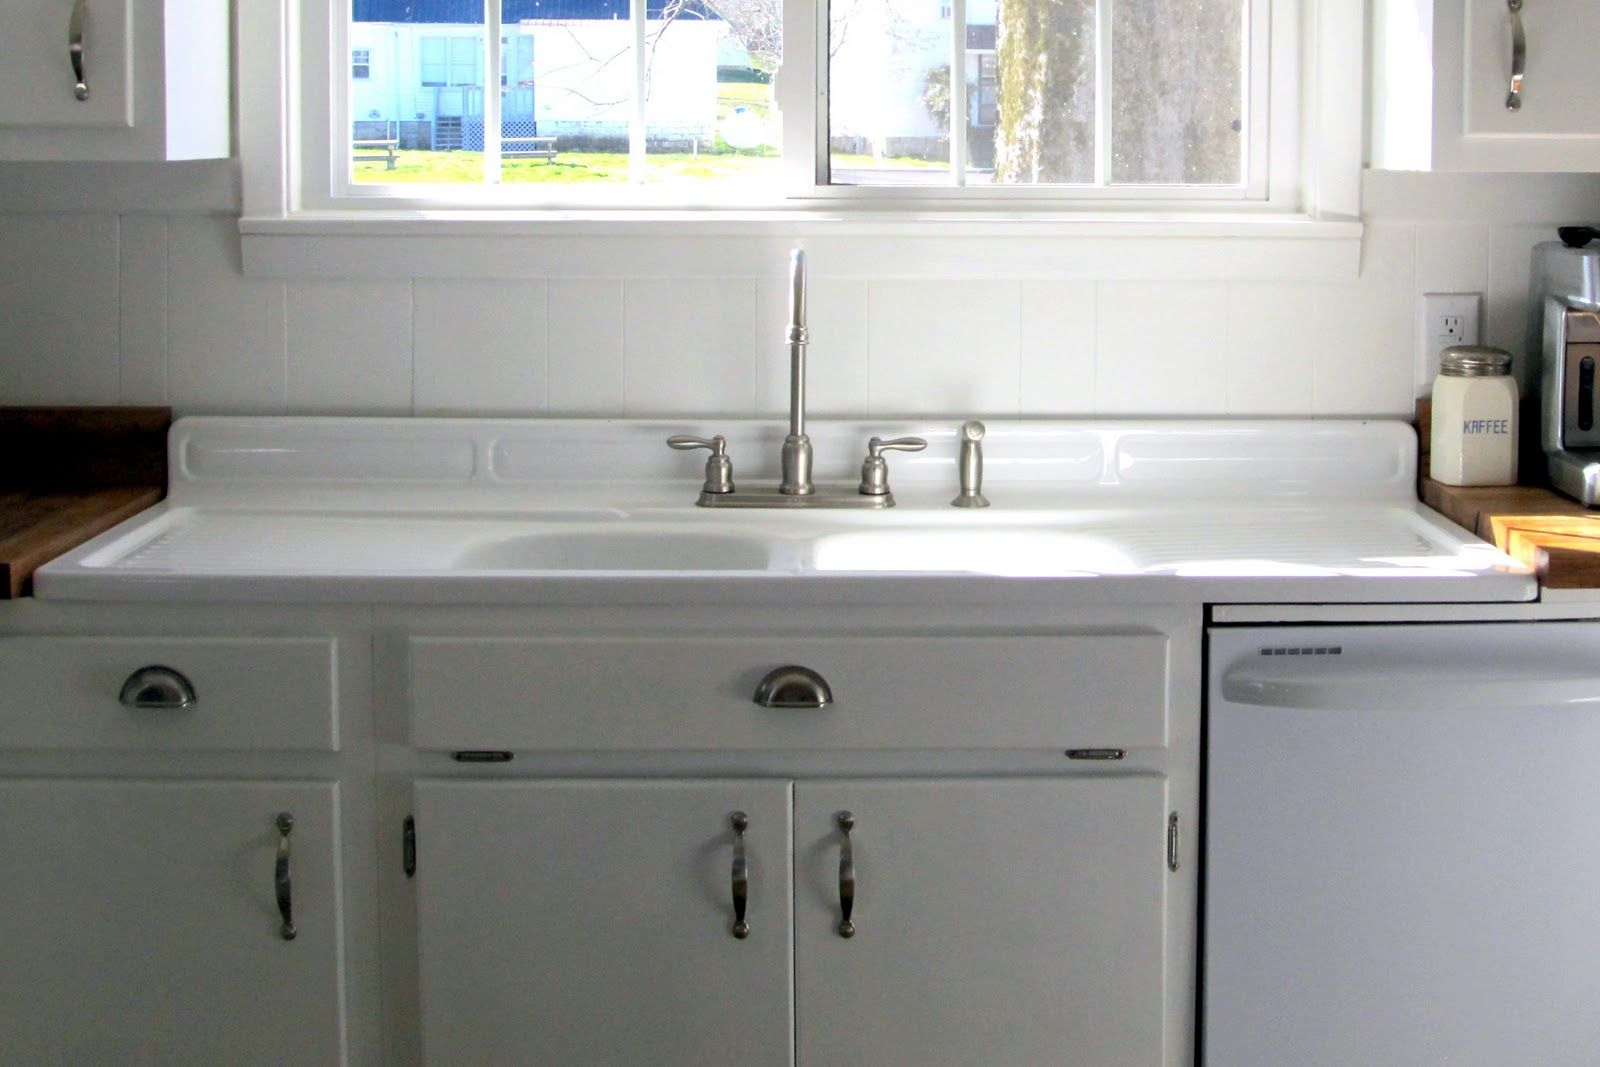 A Farmhouse Sink With Images Farmhouse Sink Kitchen Vintage